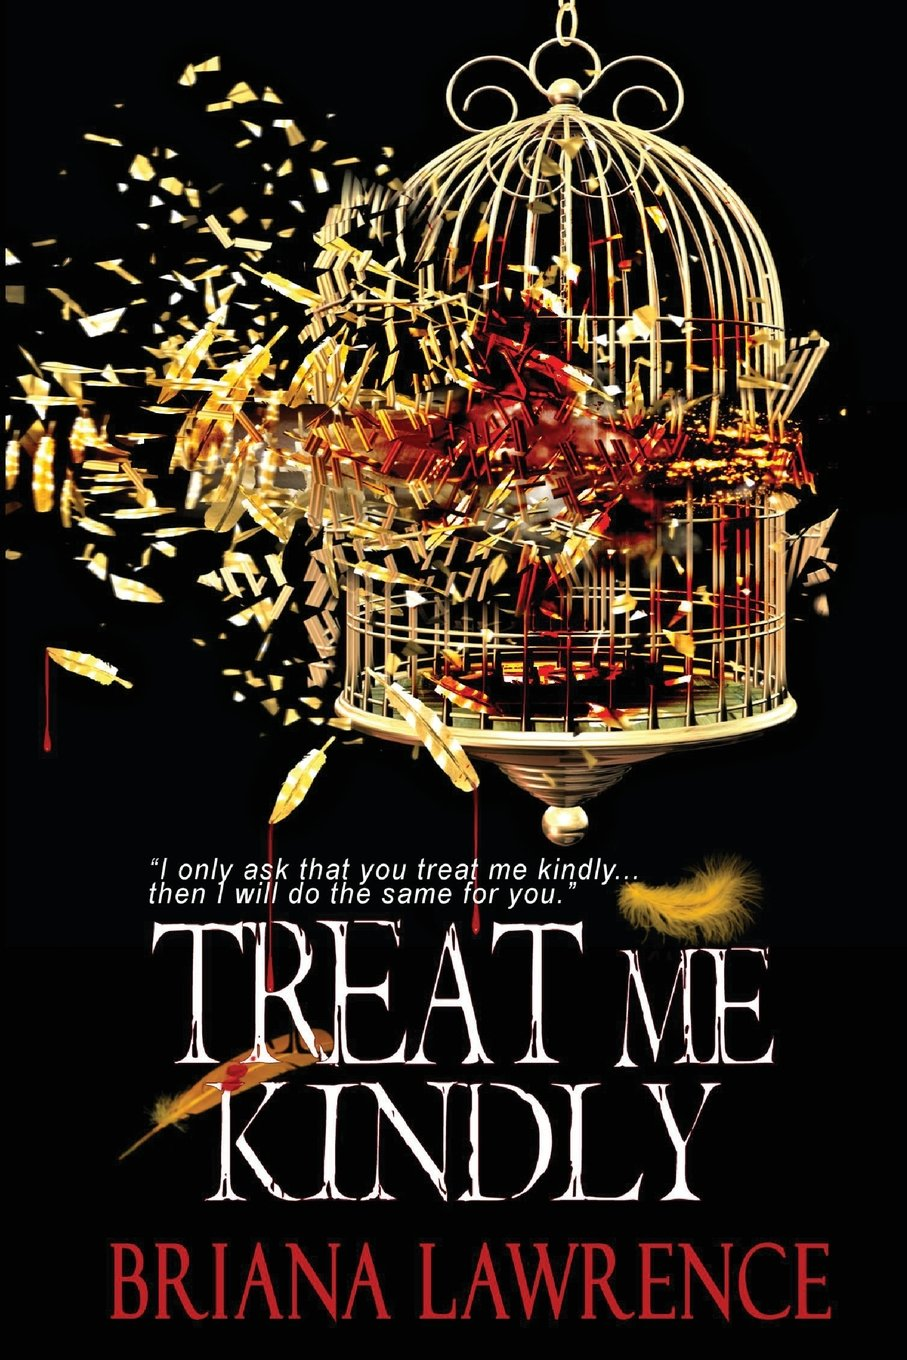 Treat Me Kindly: Amazon.es: Briana Lawrence, Kim Coghlan, Dawne Dominique: Libros en idiomas extranjeros